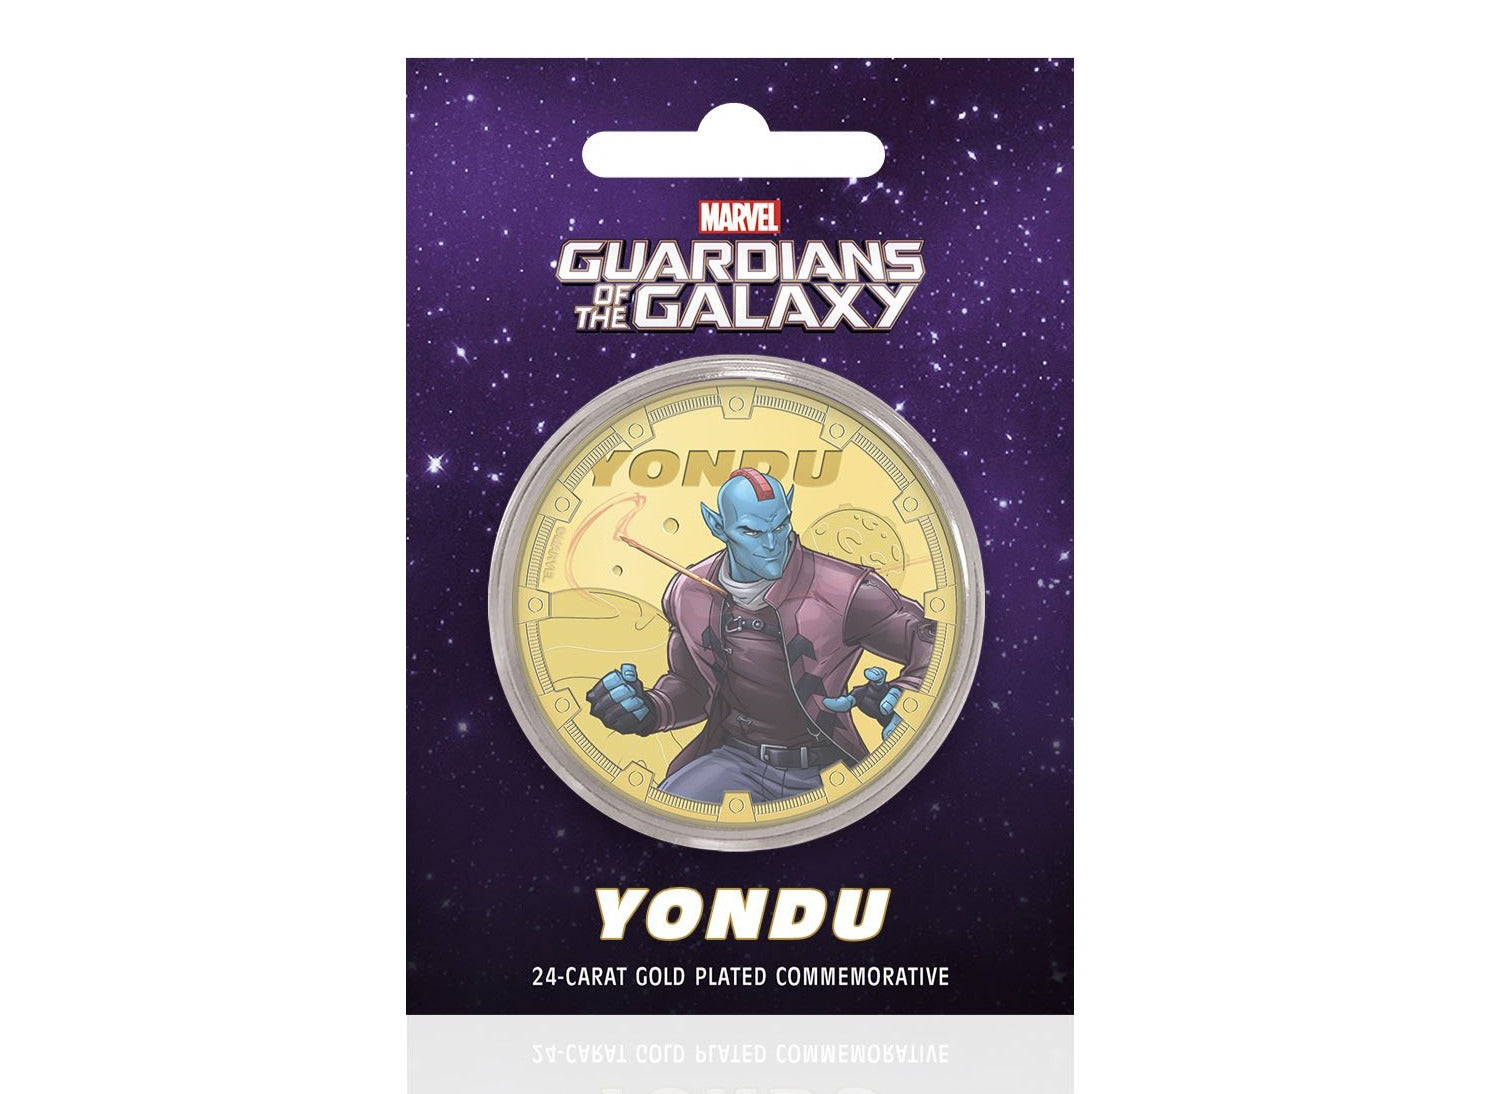 Marvel Guardianes de la Galaxia - Yondu - Moneda / Medalla conmemorativa acuñada con baño en Oro 24 quilates y coloreada a 4 colores - 44mm